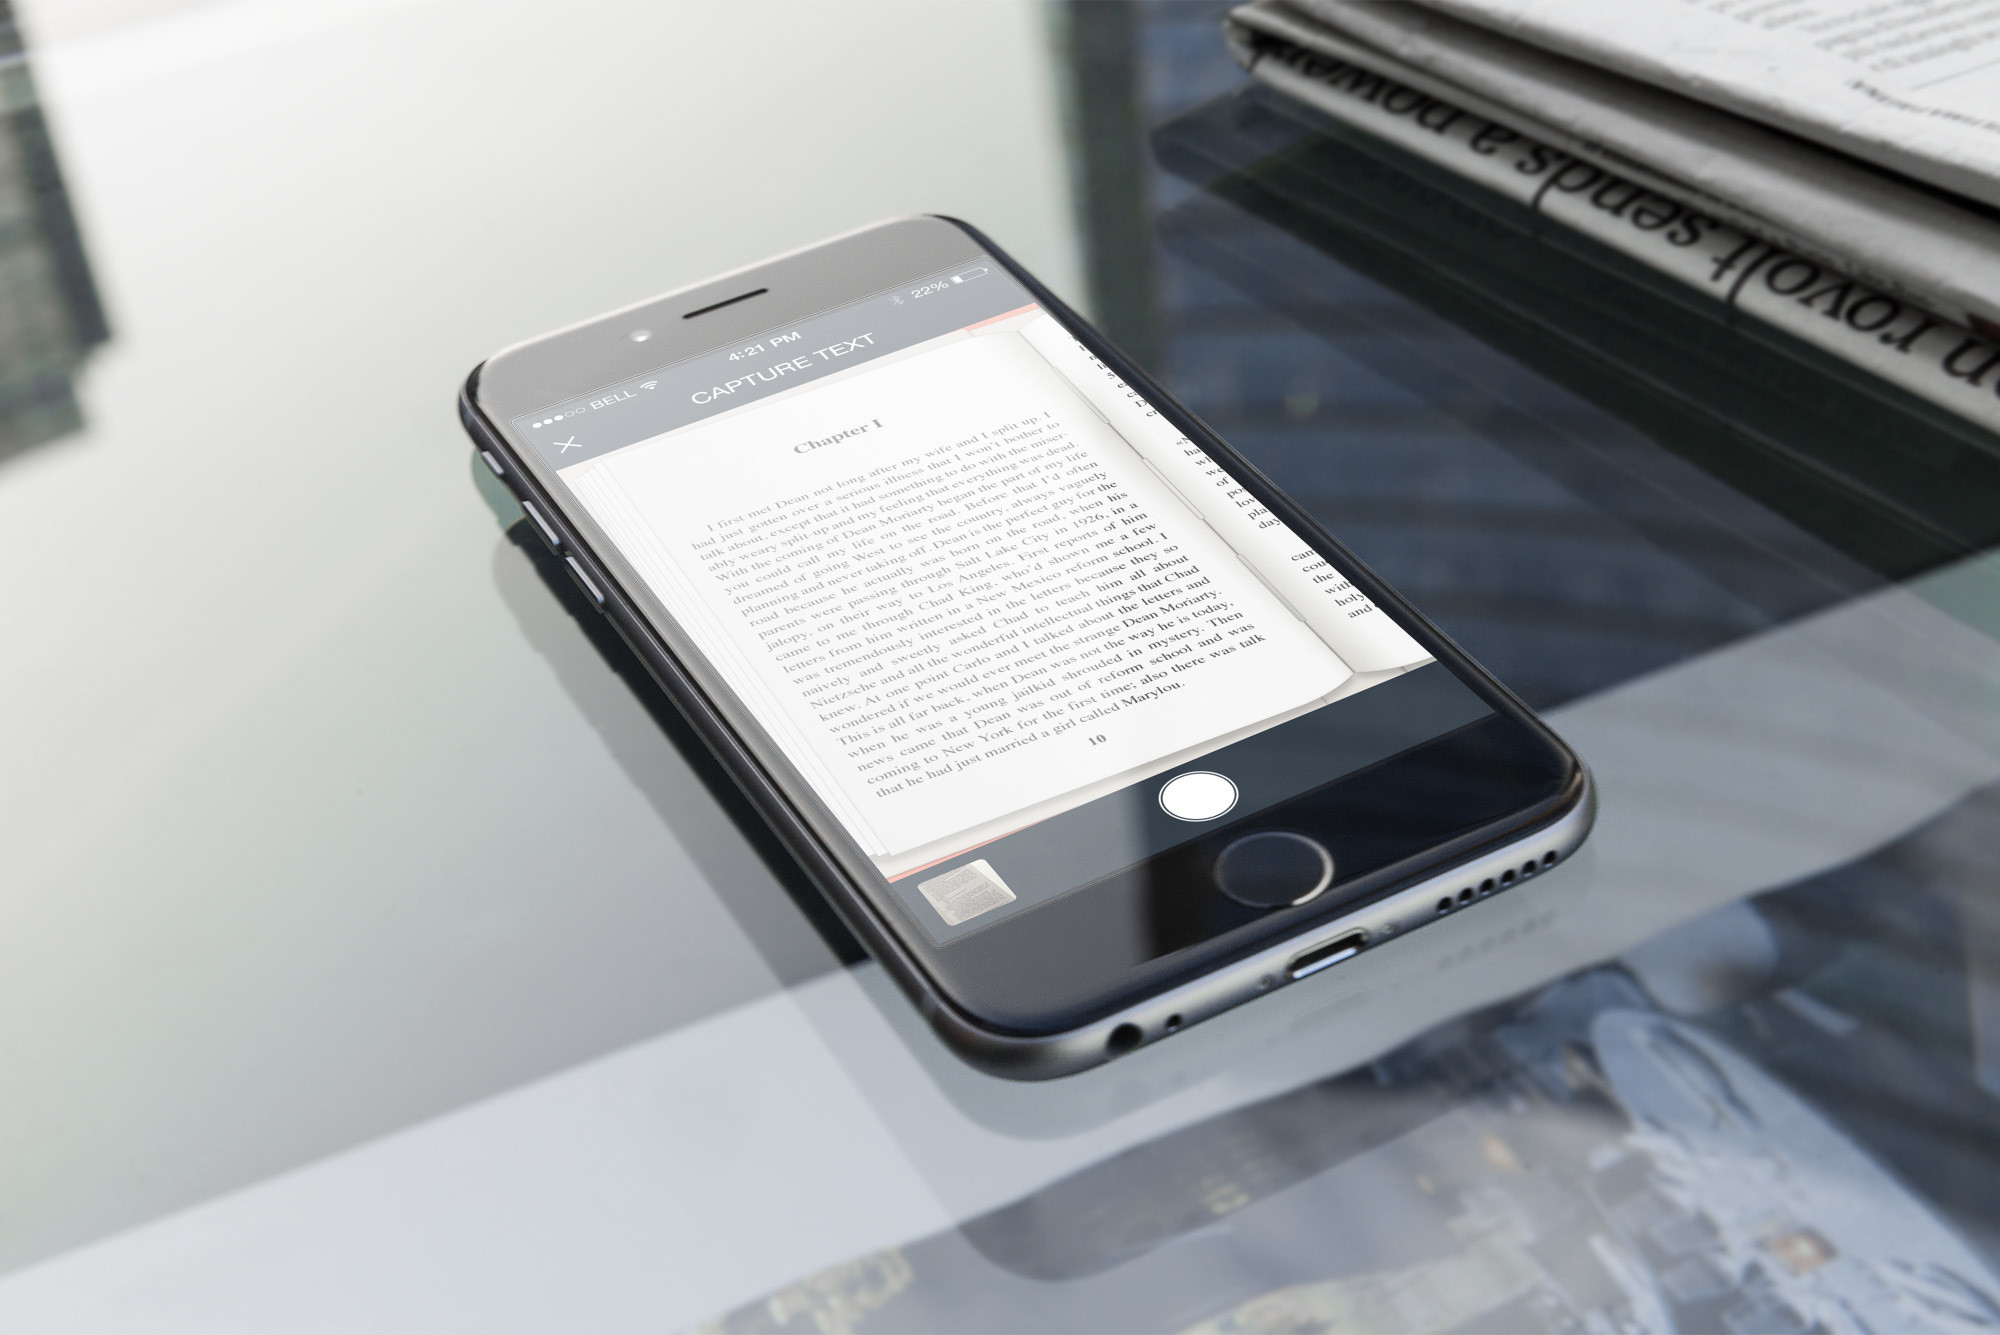 Save and share passages from paper books with Quotle